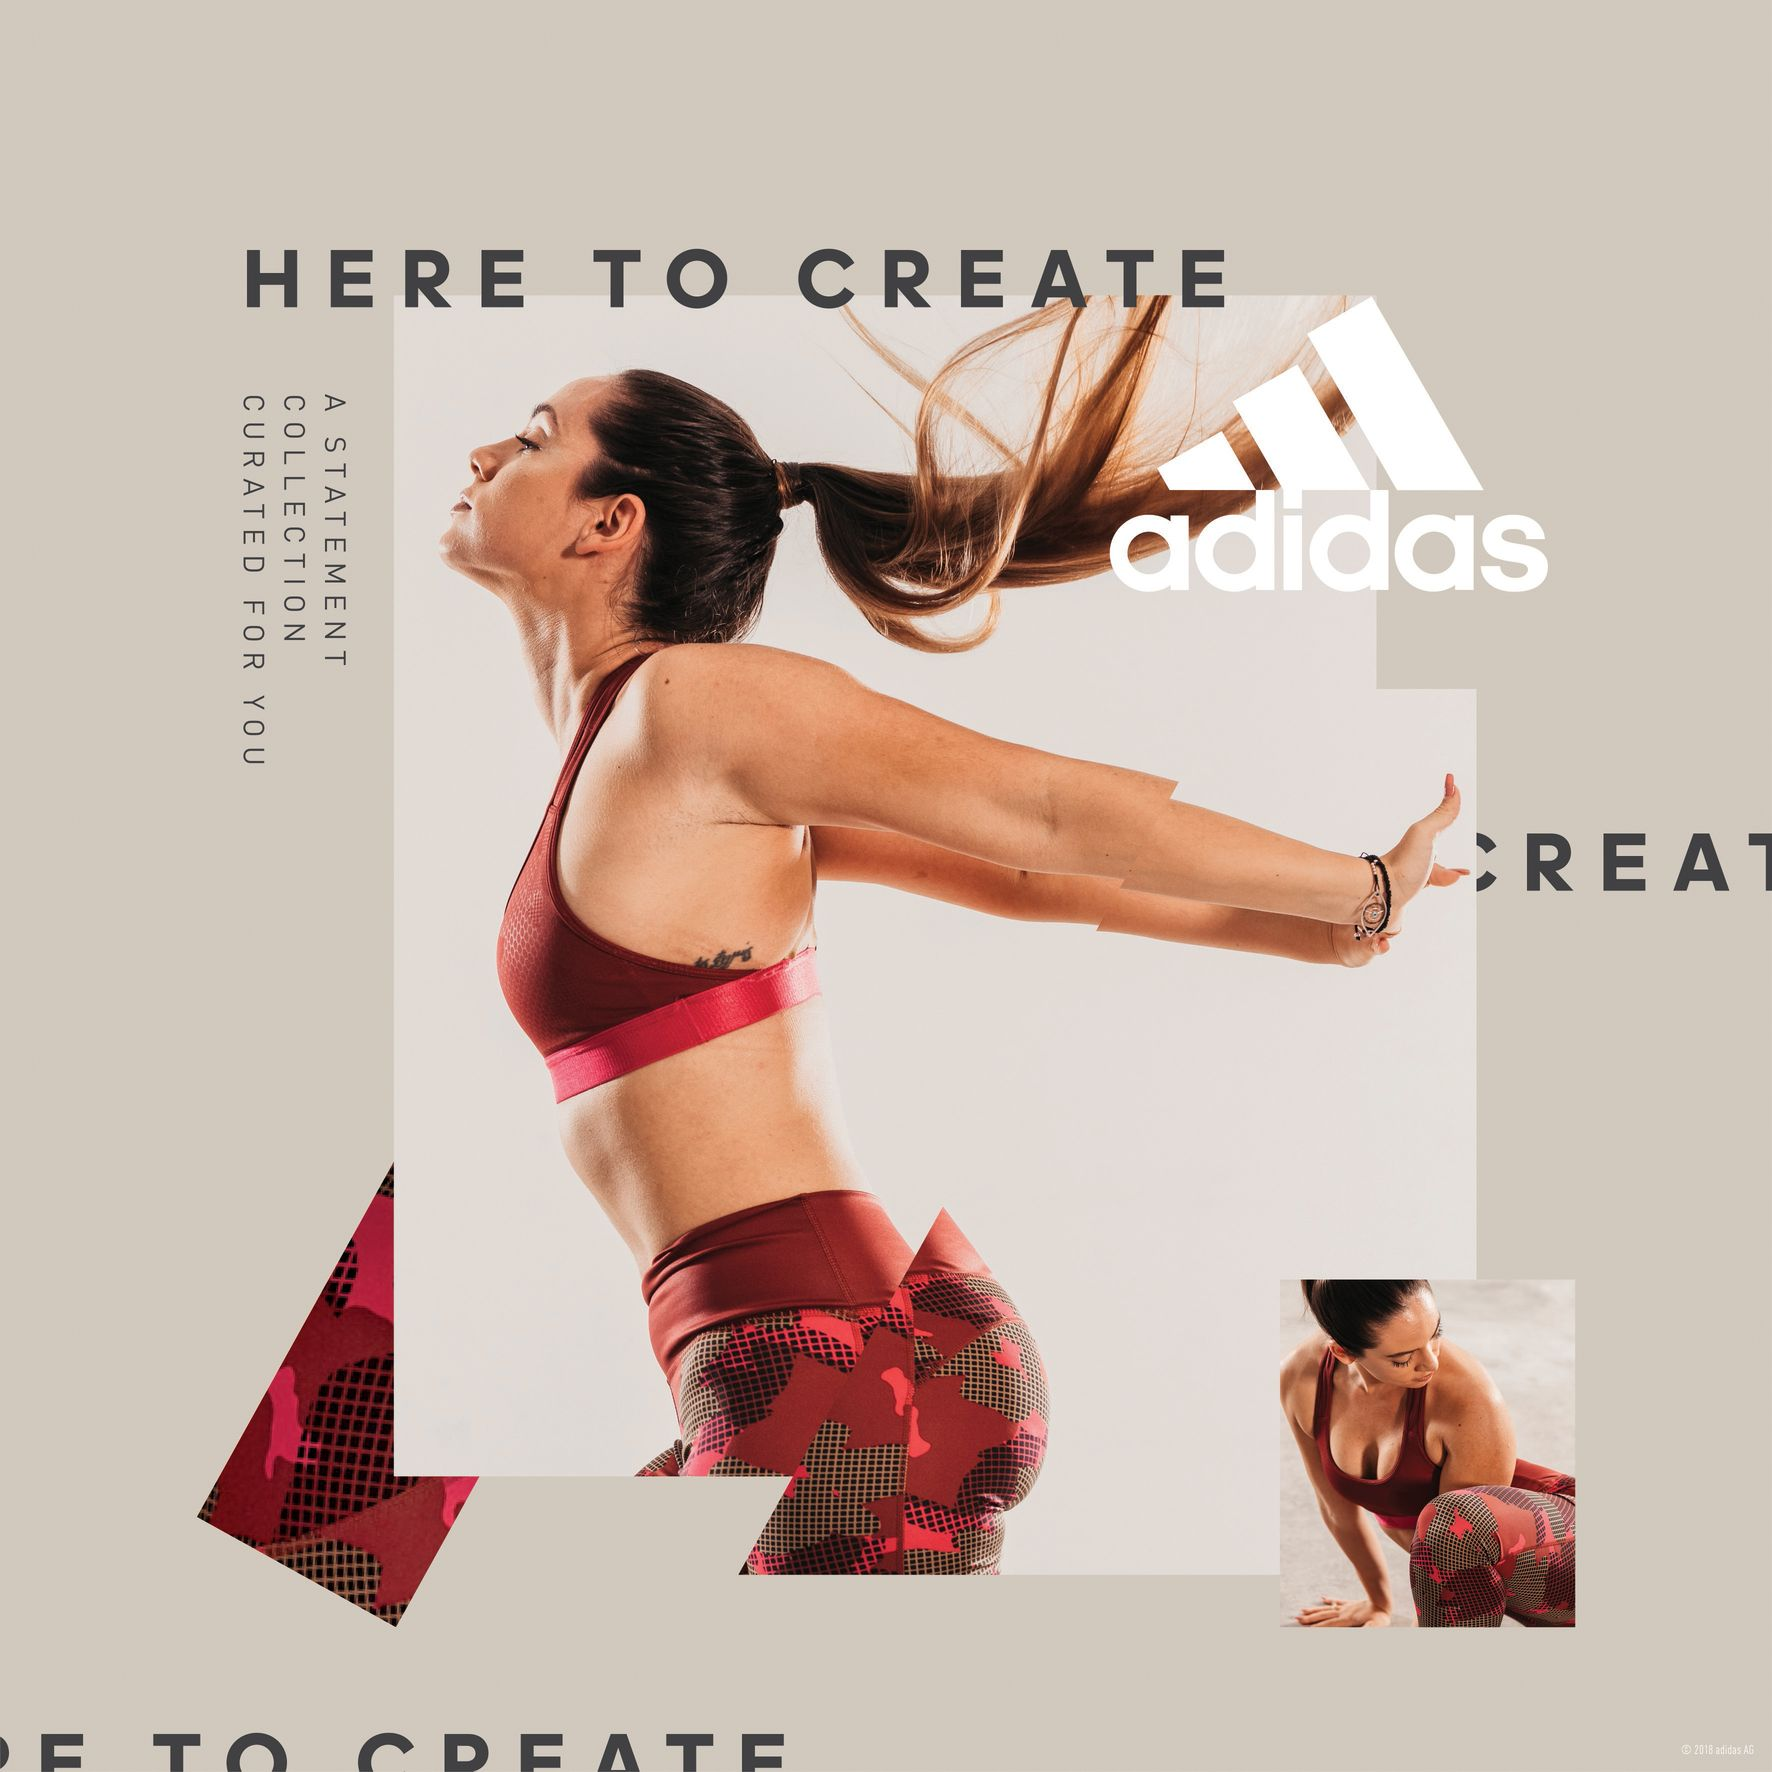 Adidas Women Statement Collection - Mandy Persaki